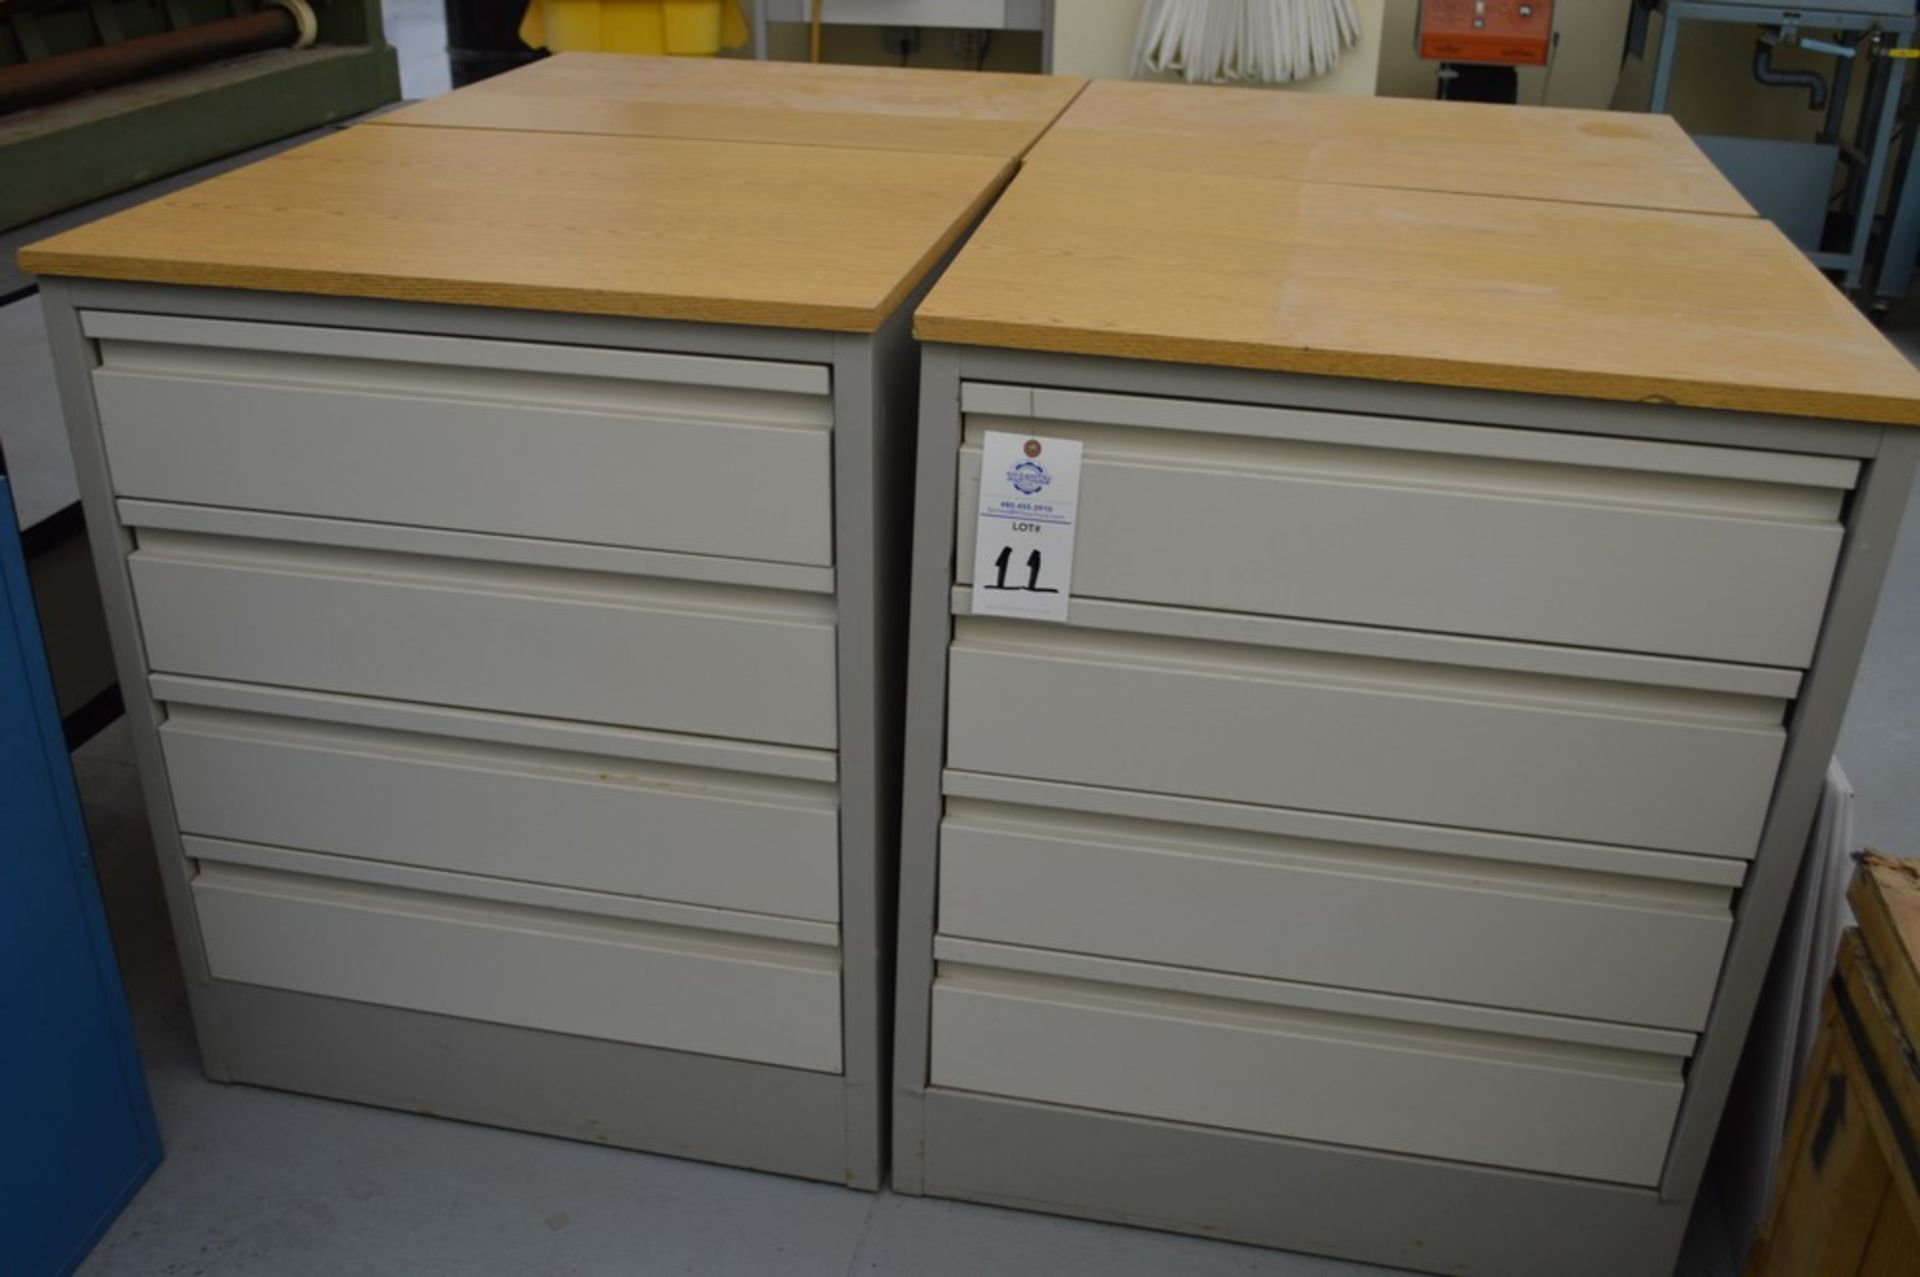 """(3) 4 Drawer Metal Cabinets with wood finished formica tops, 24"""" x 30.5"""", 36.5"""" Tall - Image 3 of 4"""